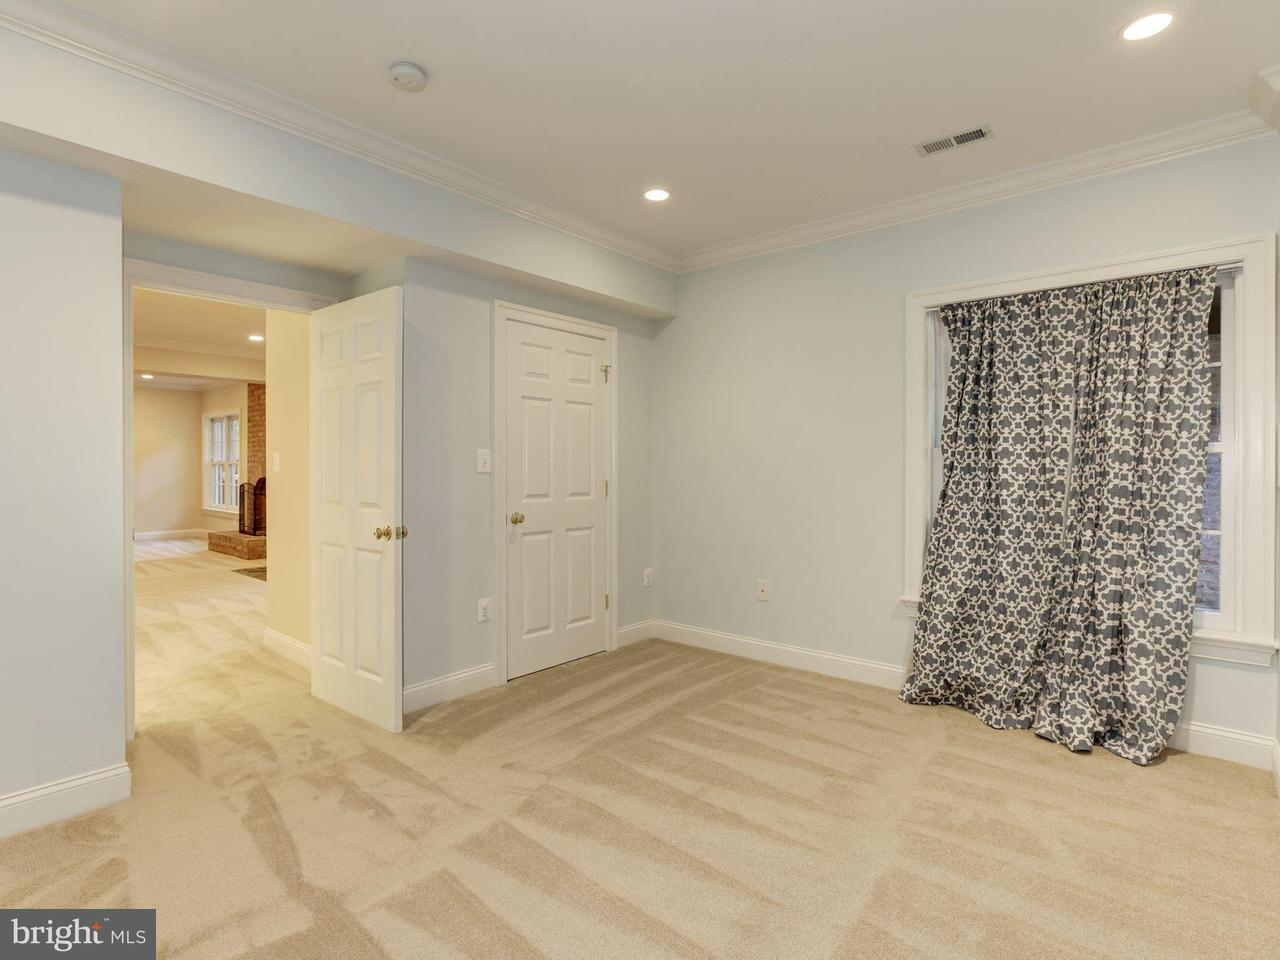 Additional photo for property listing at 7913 Sandalfoot Dr  Potomac, Maryland 20854 United States